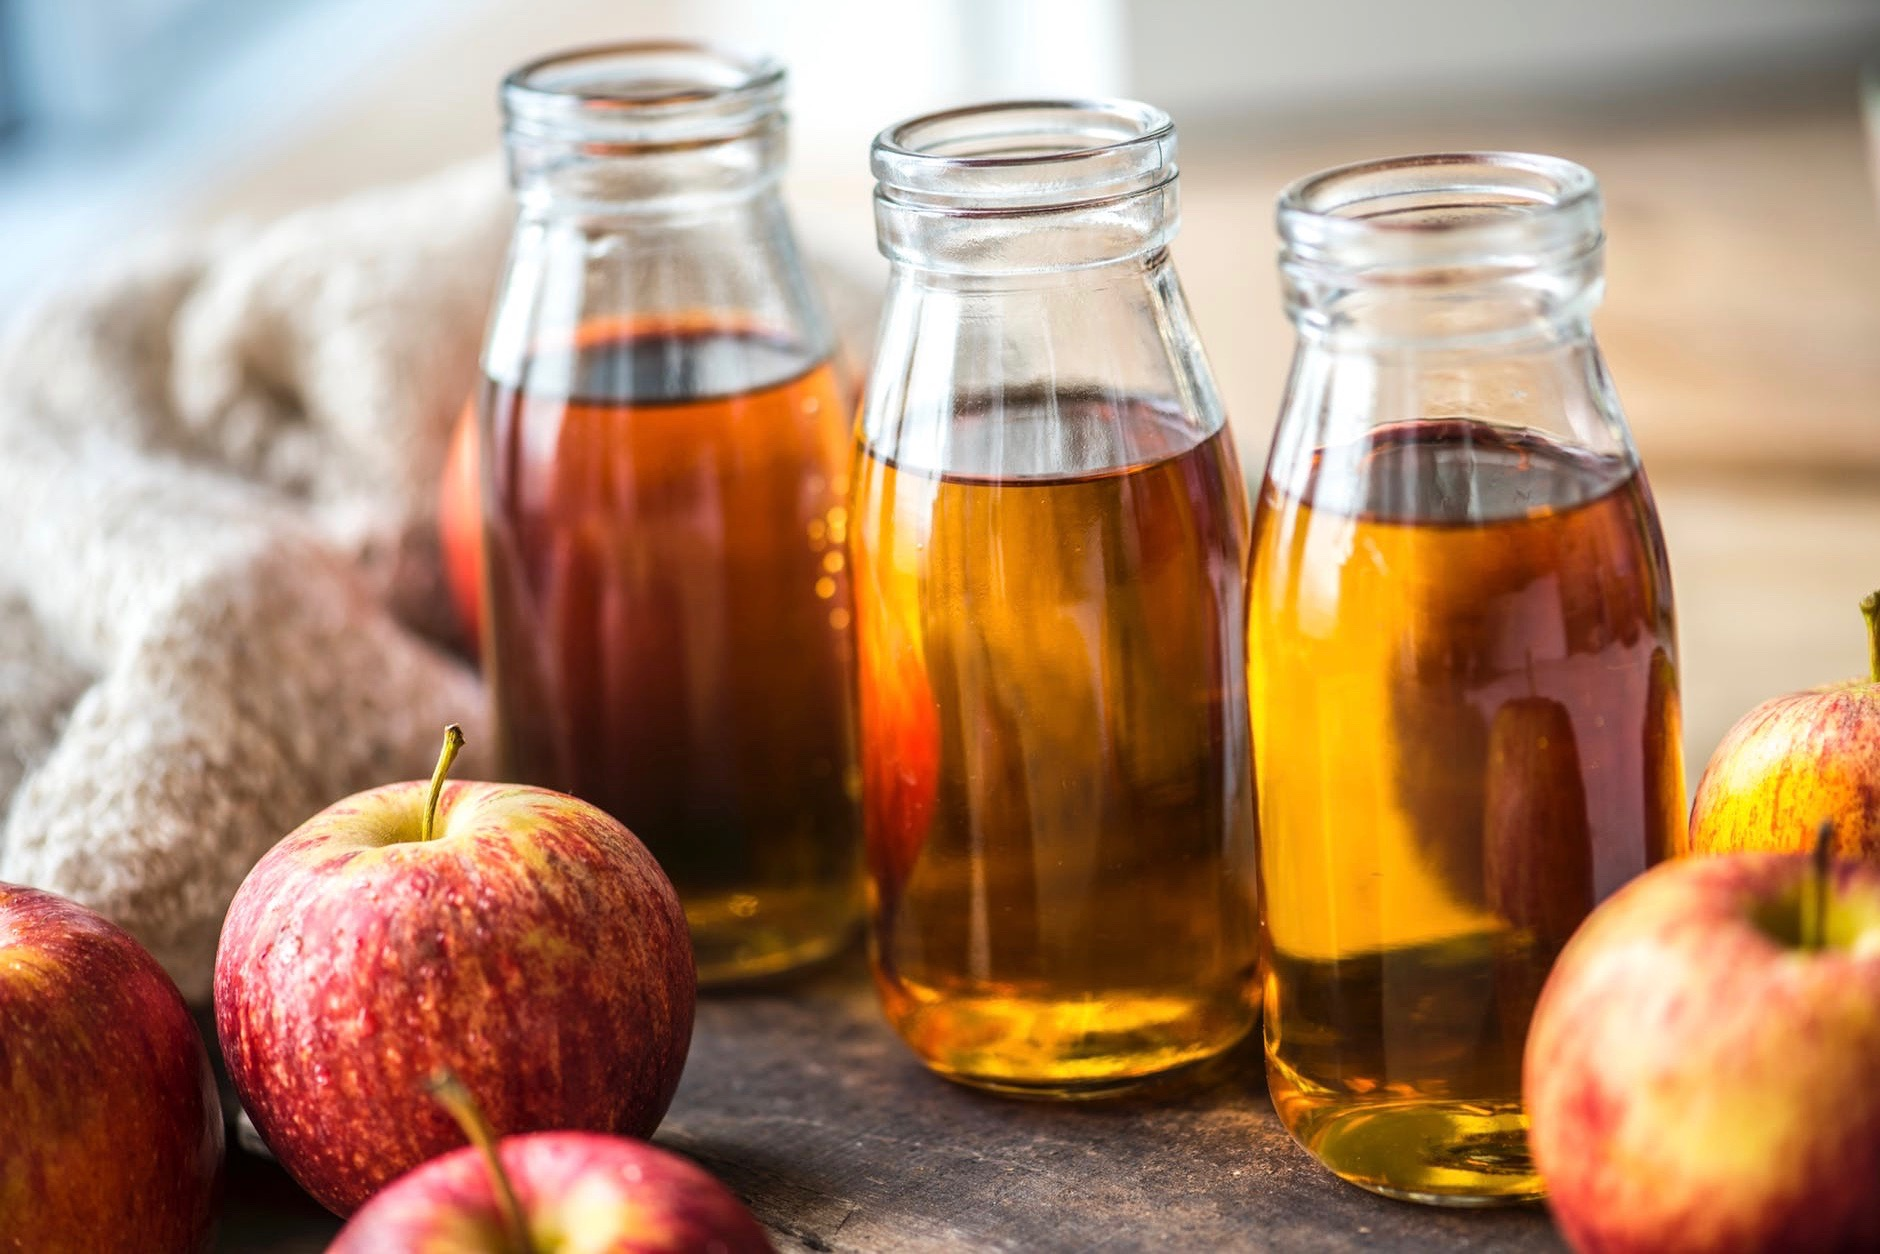 #Nutrition Tips For You: Does Apple Cider Vinegar Help To Lose Weight?